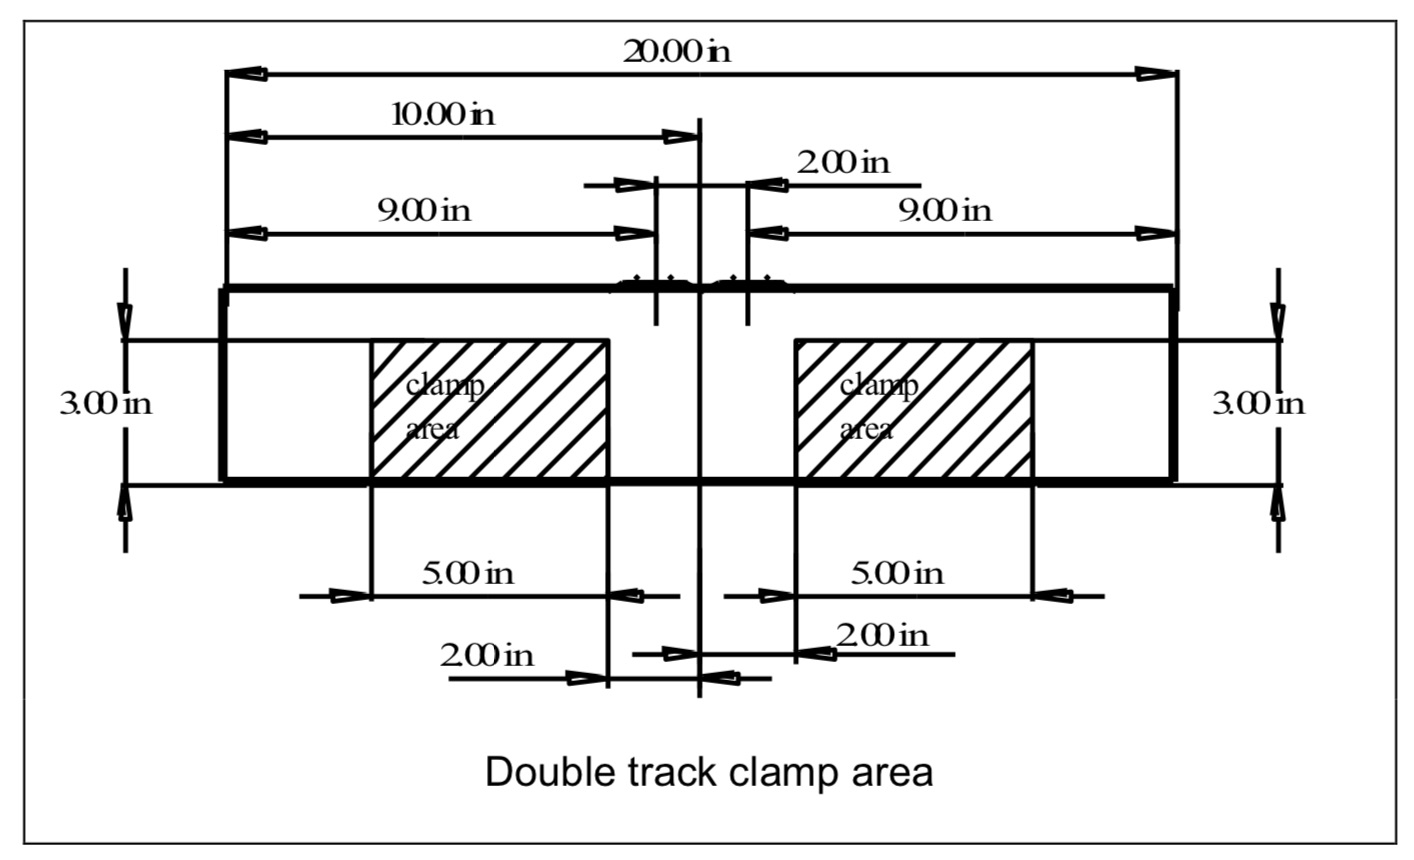 Freemo double track clamp areas